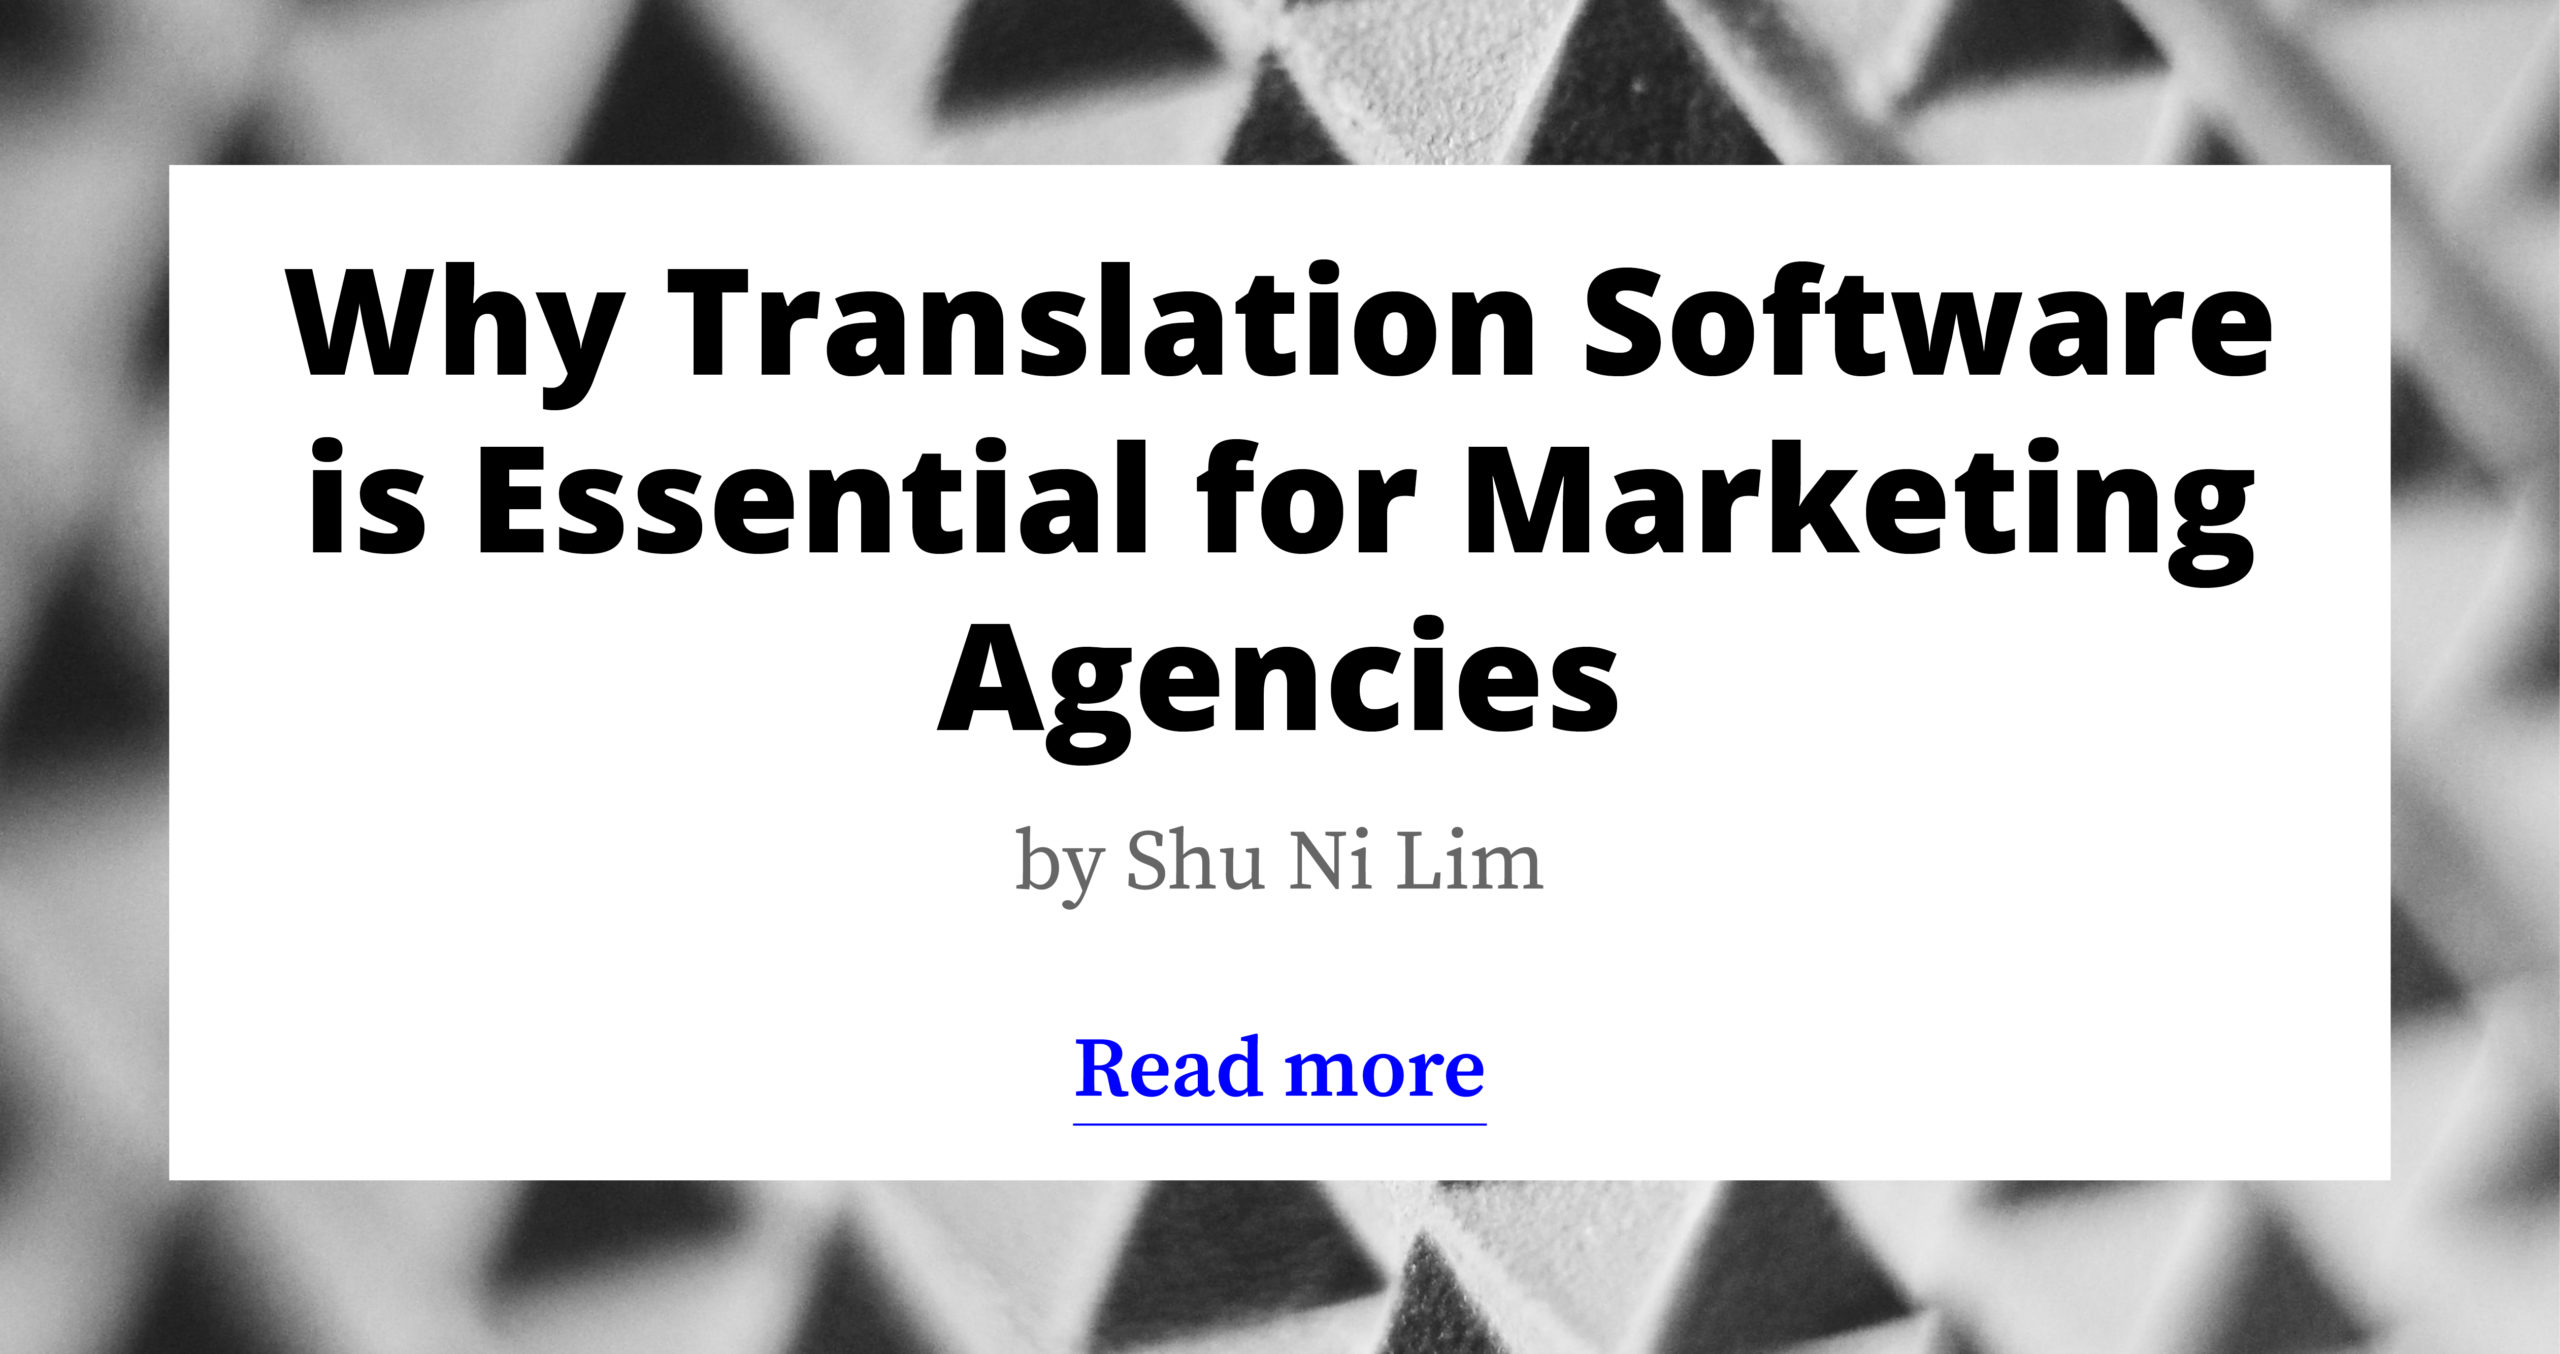 Why Translation Software is Essential for Marketing Agencies